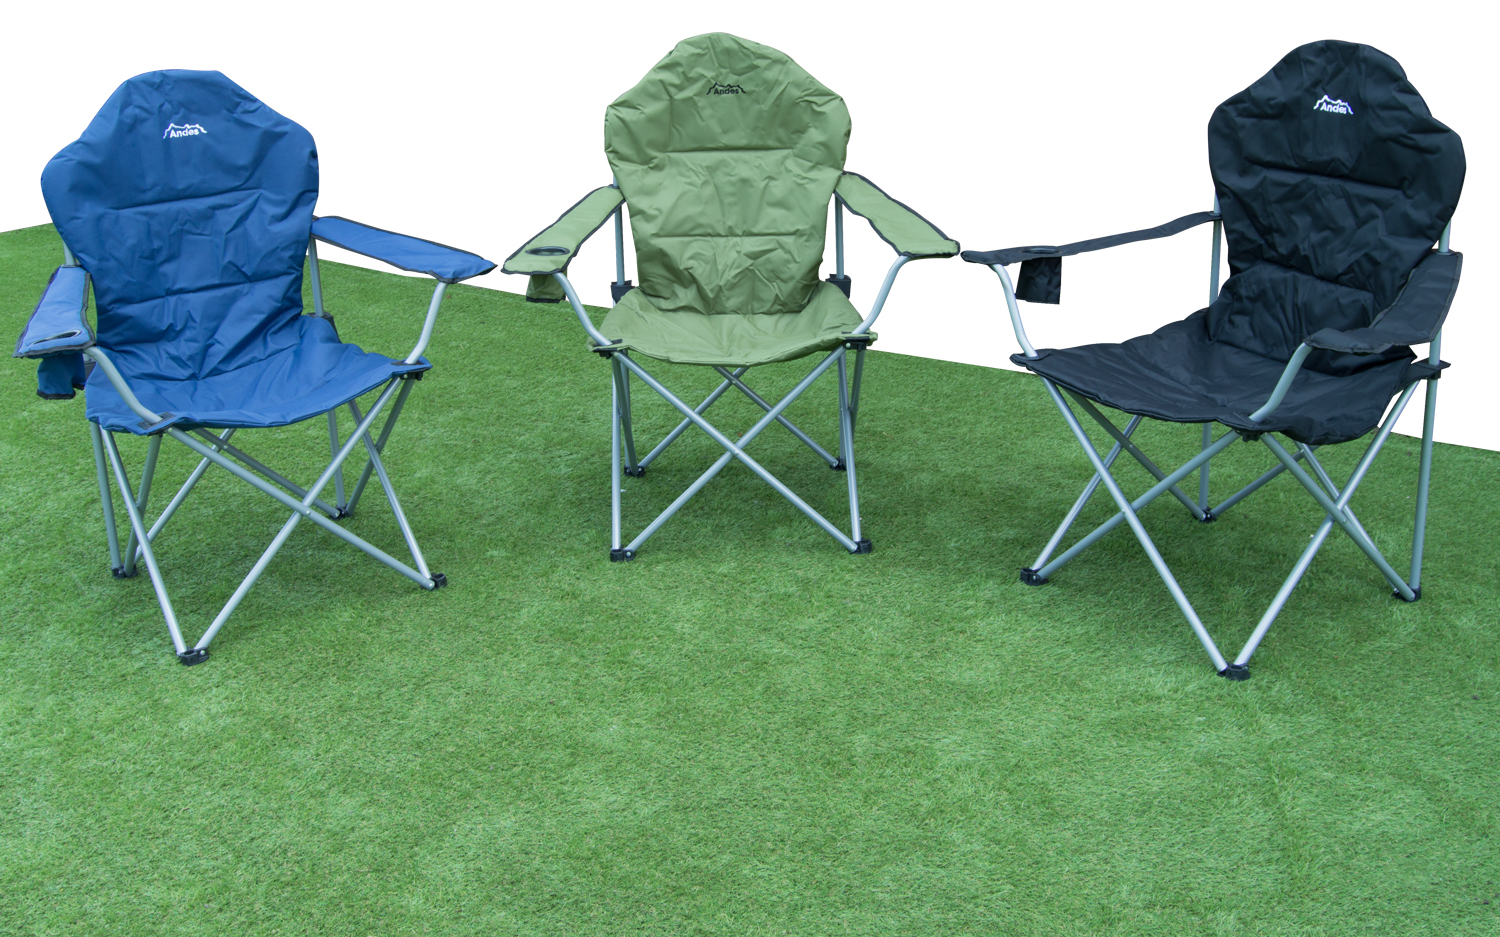 Deluxe Camping Chairs Andes Folding Camping Deluxe Chair Outdoor Garden Picnic